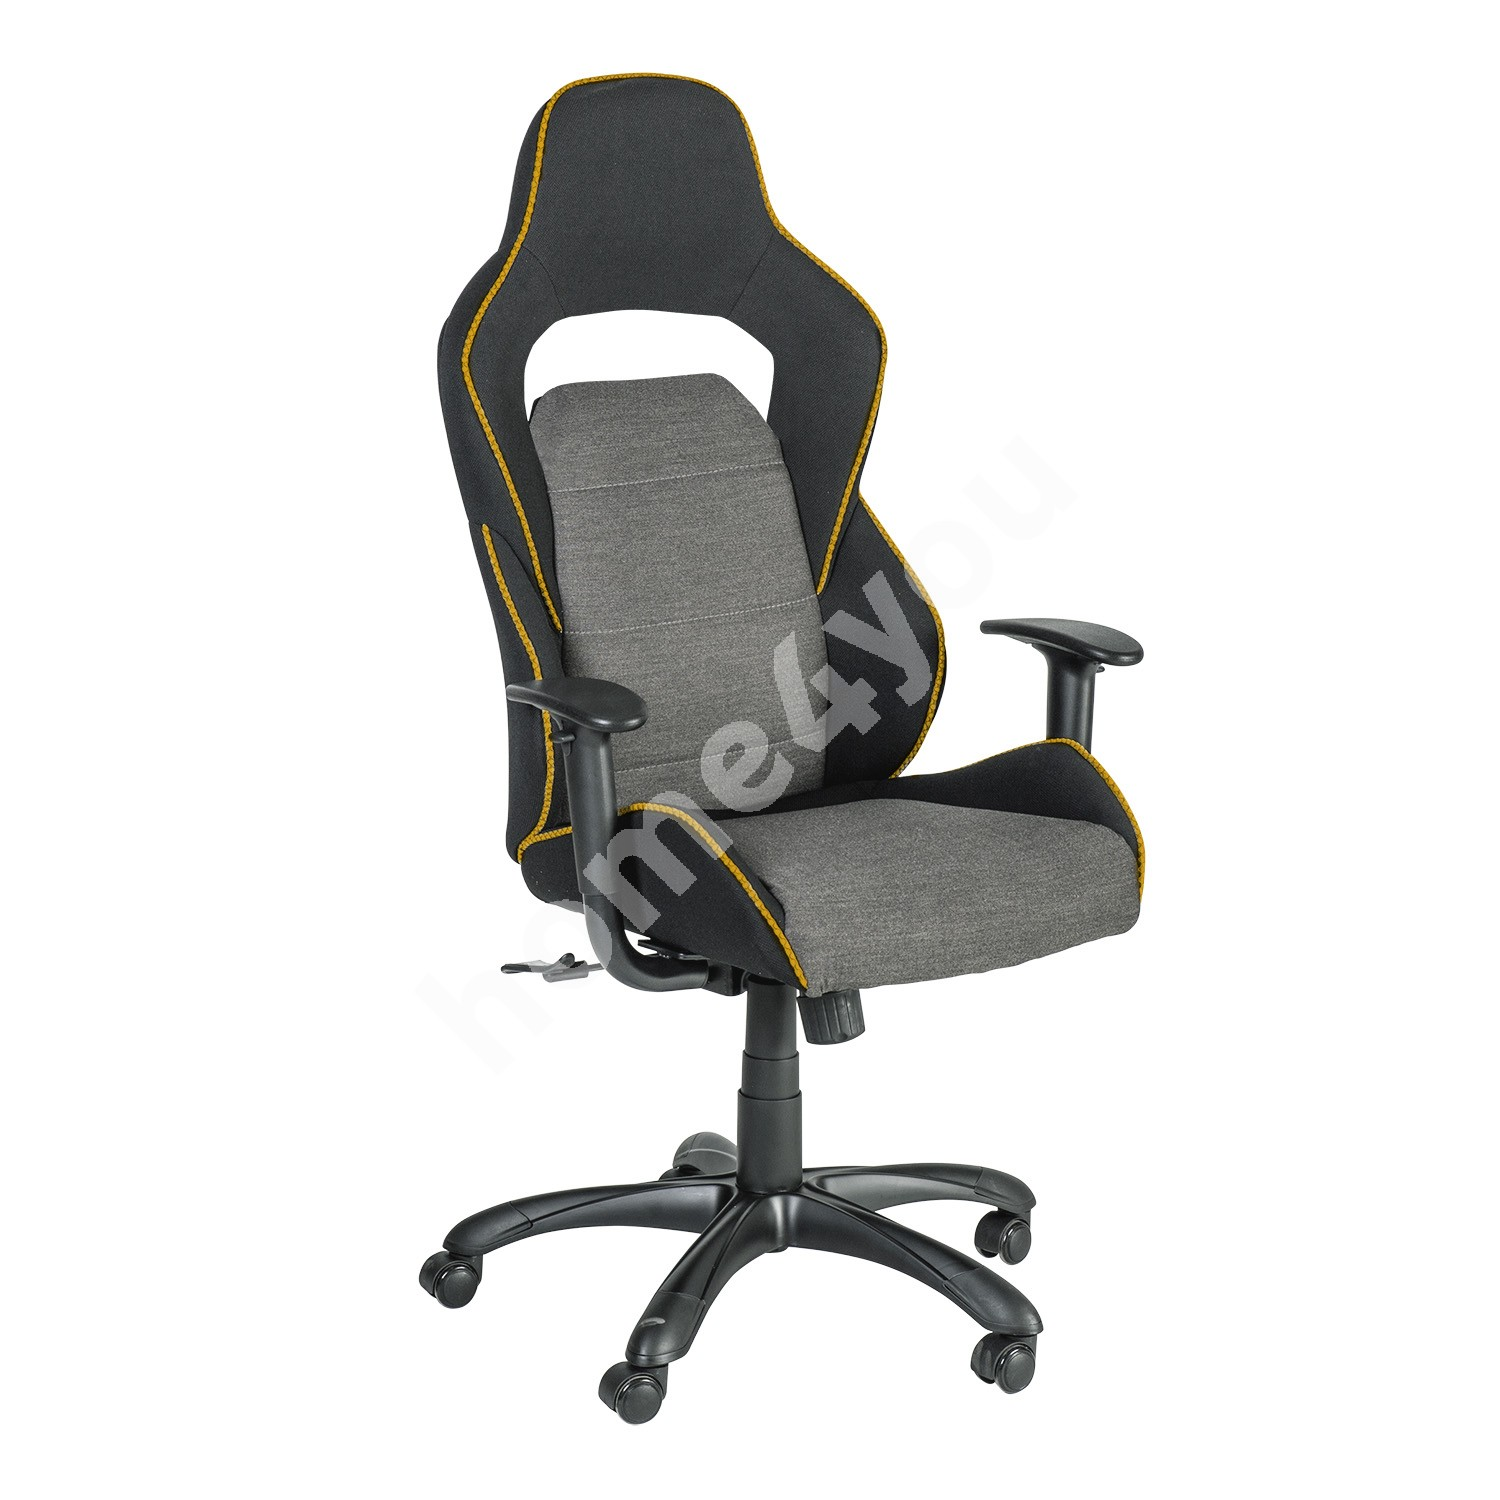 Task chair COMFORT 69x68xH120-130cm, seat and back rest: fabric, color: black / grey with orange welt